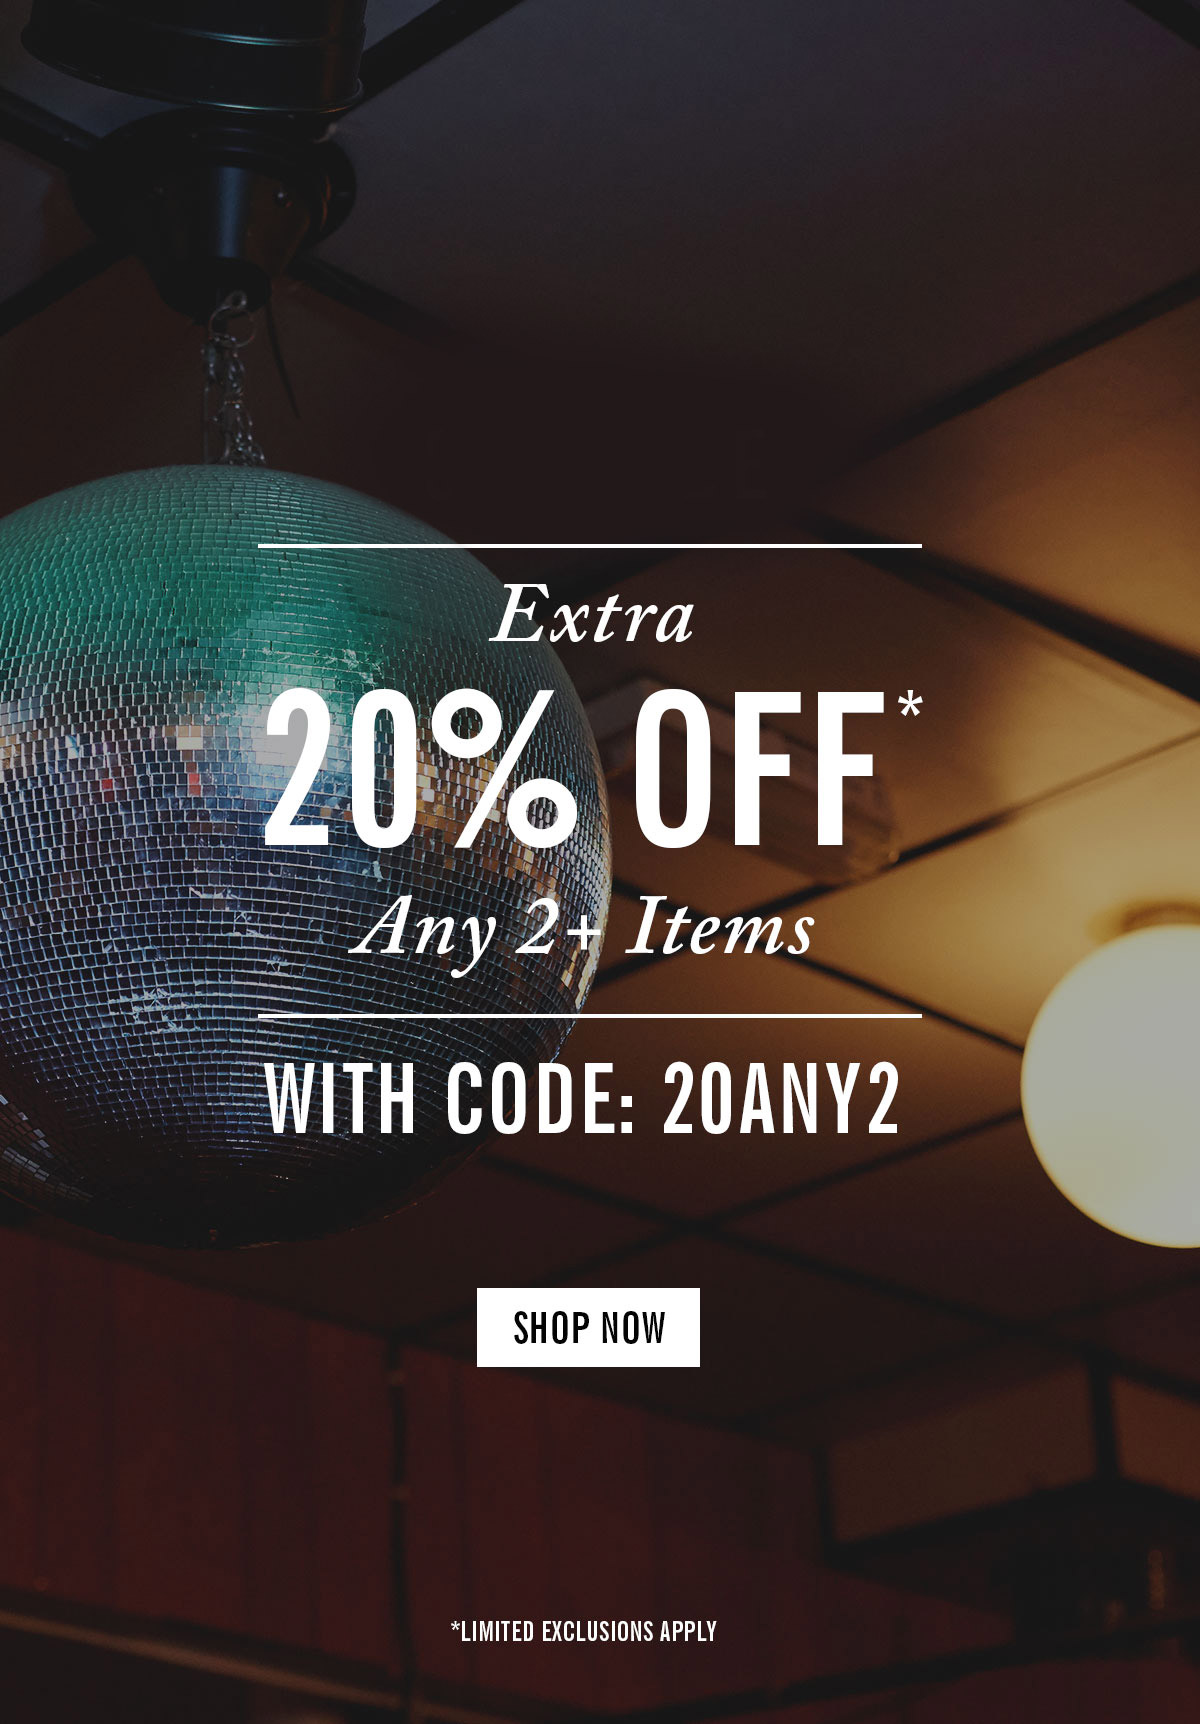 Extra 20% Off Any 2 Items (Exclusions Apply) | Shop Now